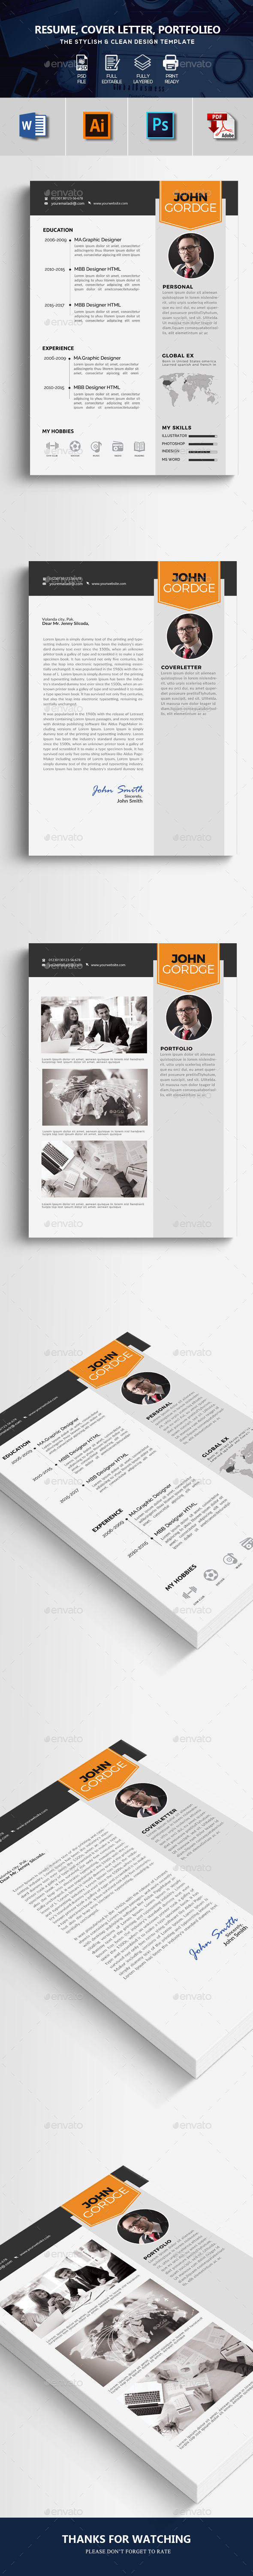 Resume CV Template 3 Pages - Resumes Stationery